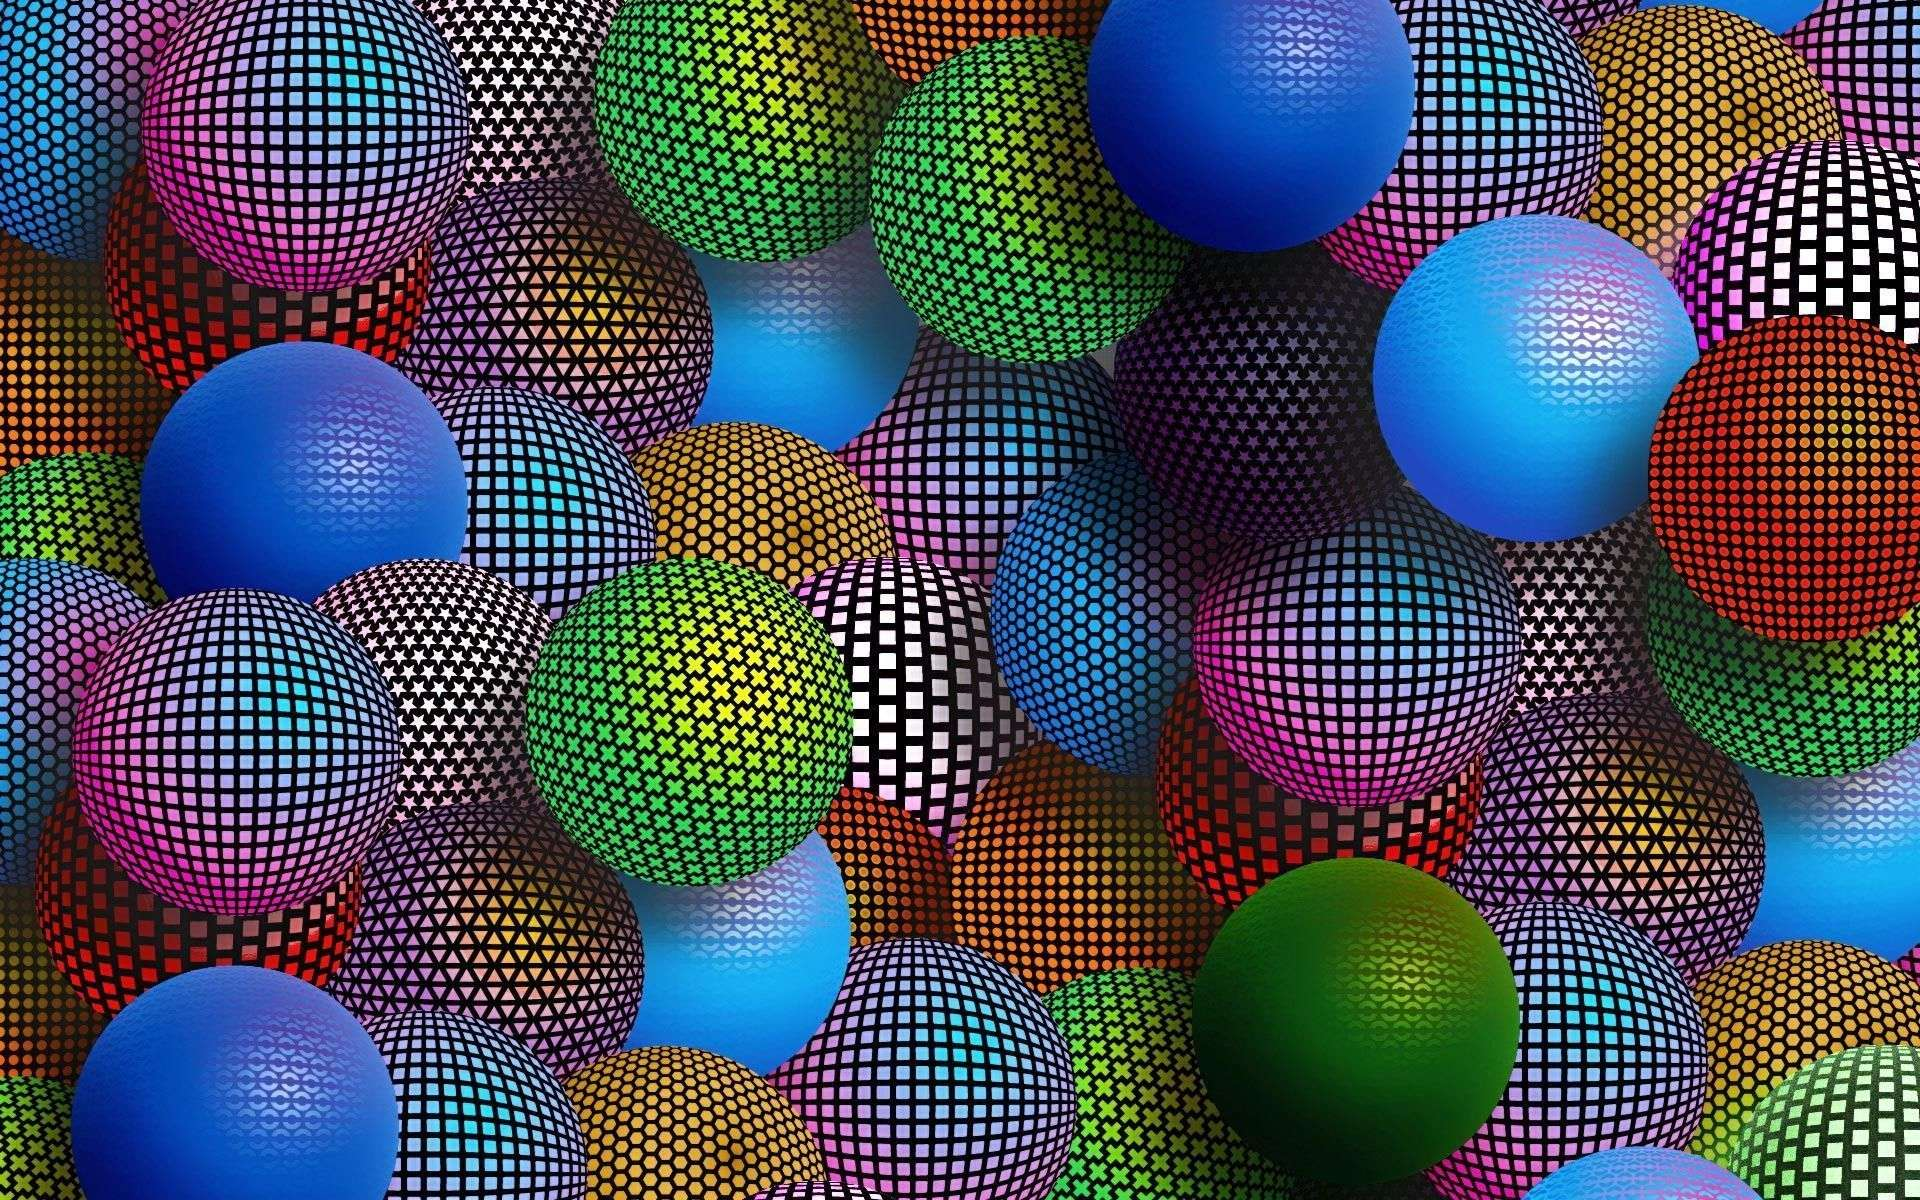 Multi Colored Patterned Spheres Hd Wallpapers